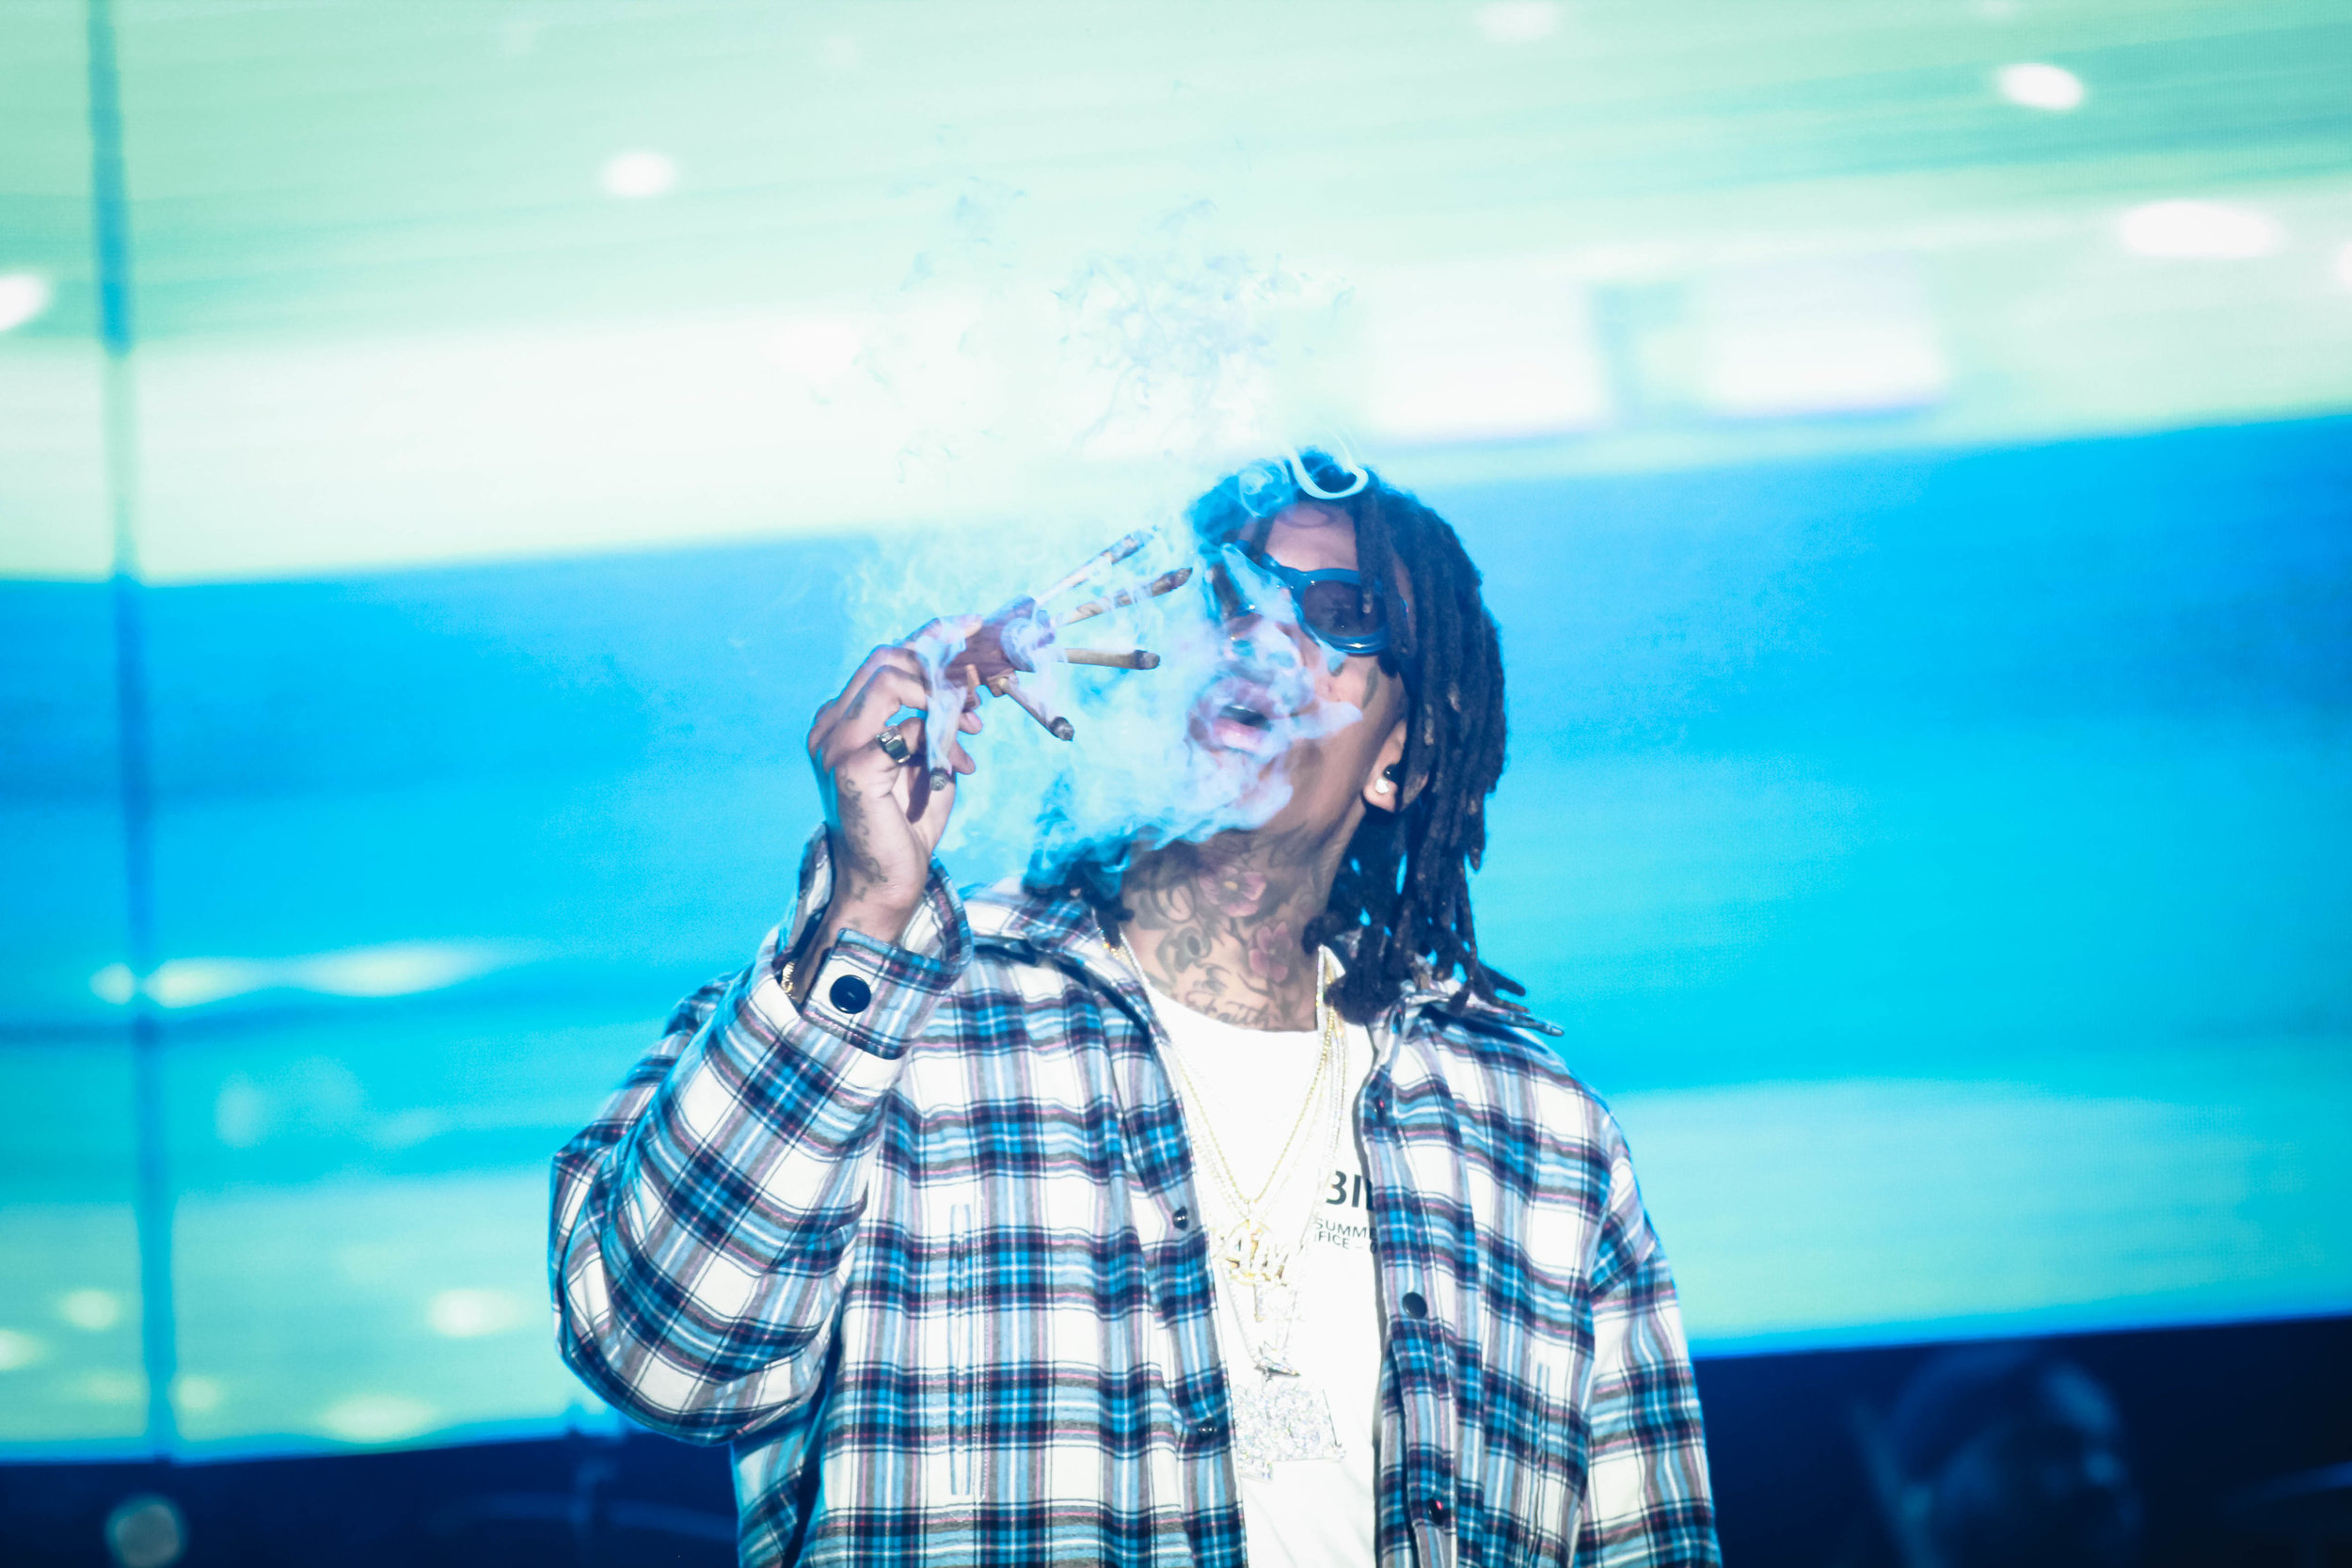 Wiz Khalifa's started his set by smoking five blunts in front of the chanting crowd.